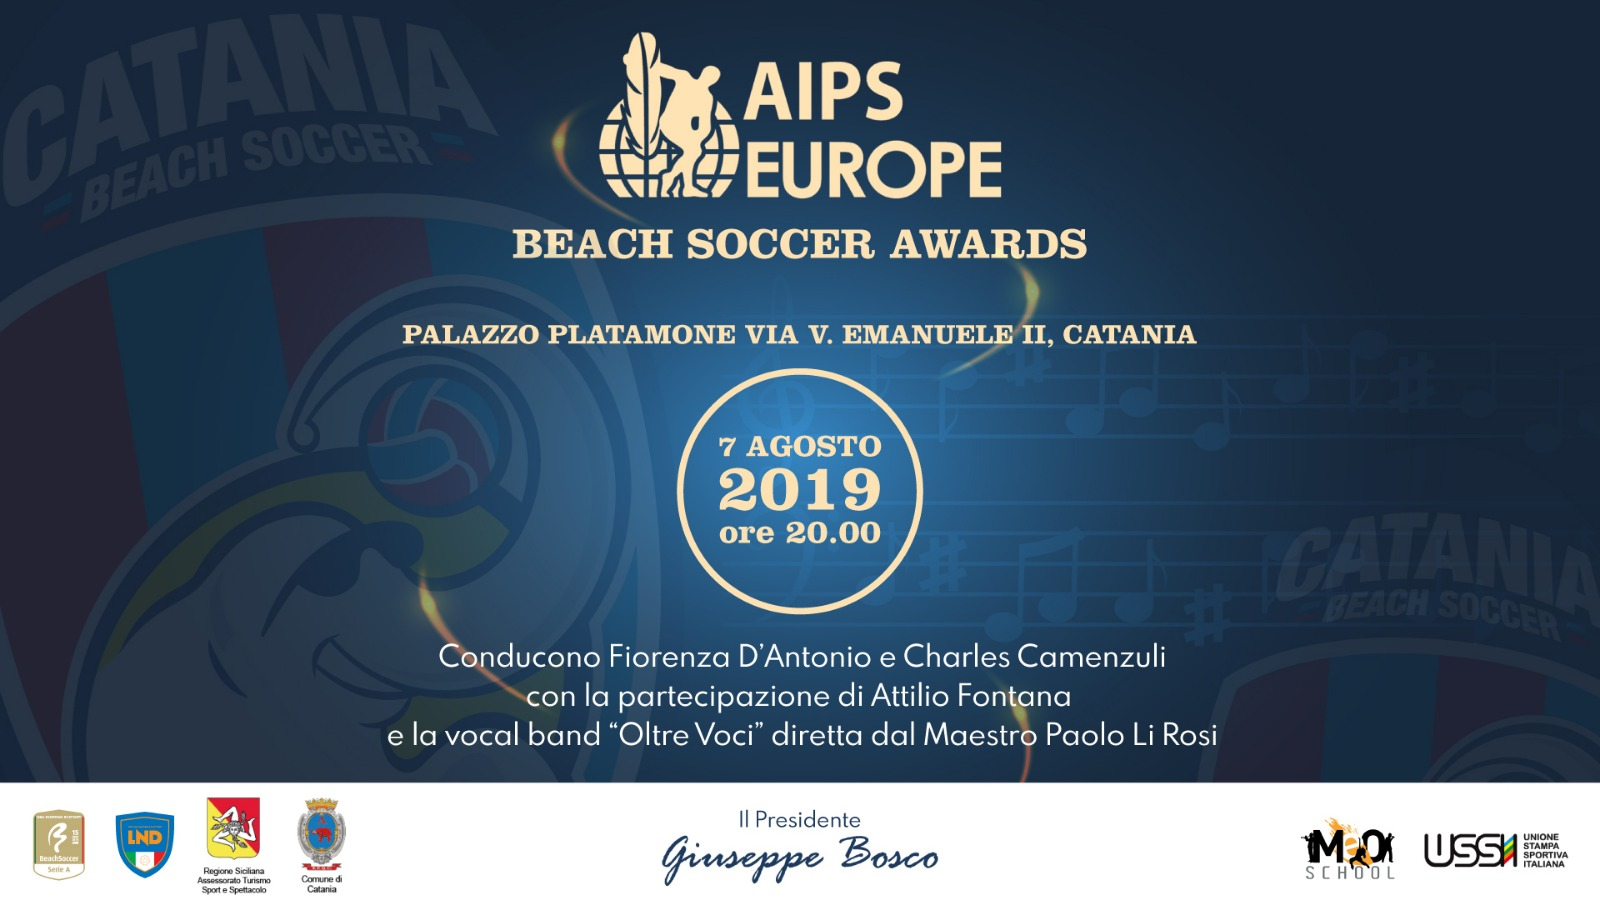 QUESTA SERA AL CORTILE PLATAMONE AIPS BEACH SOCCER AWARDS 2019